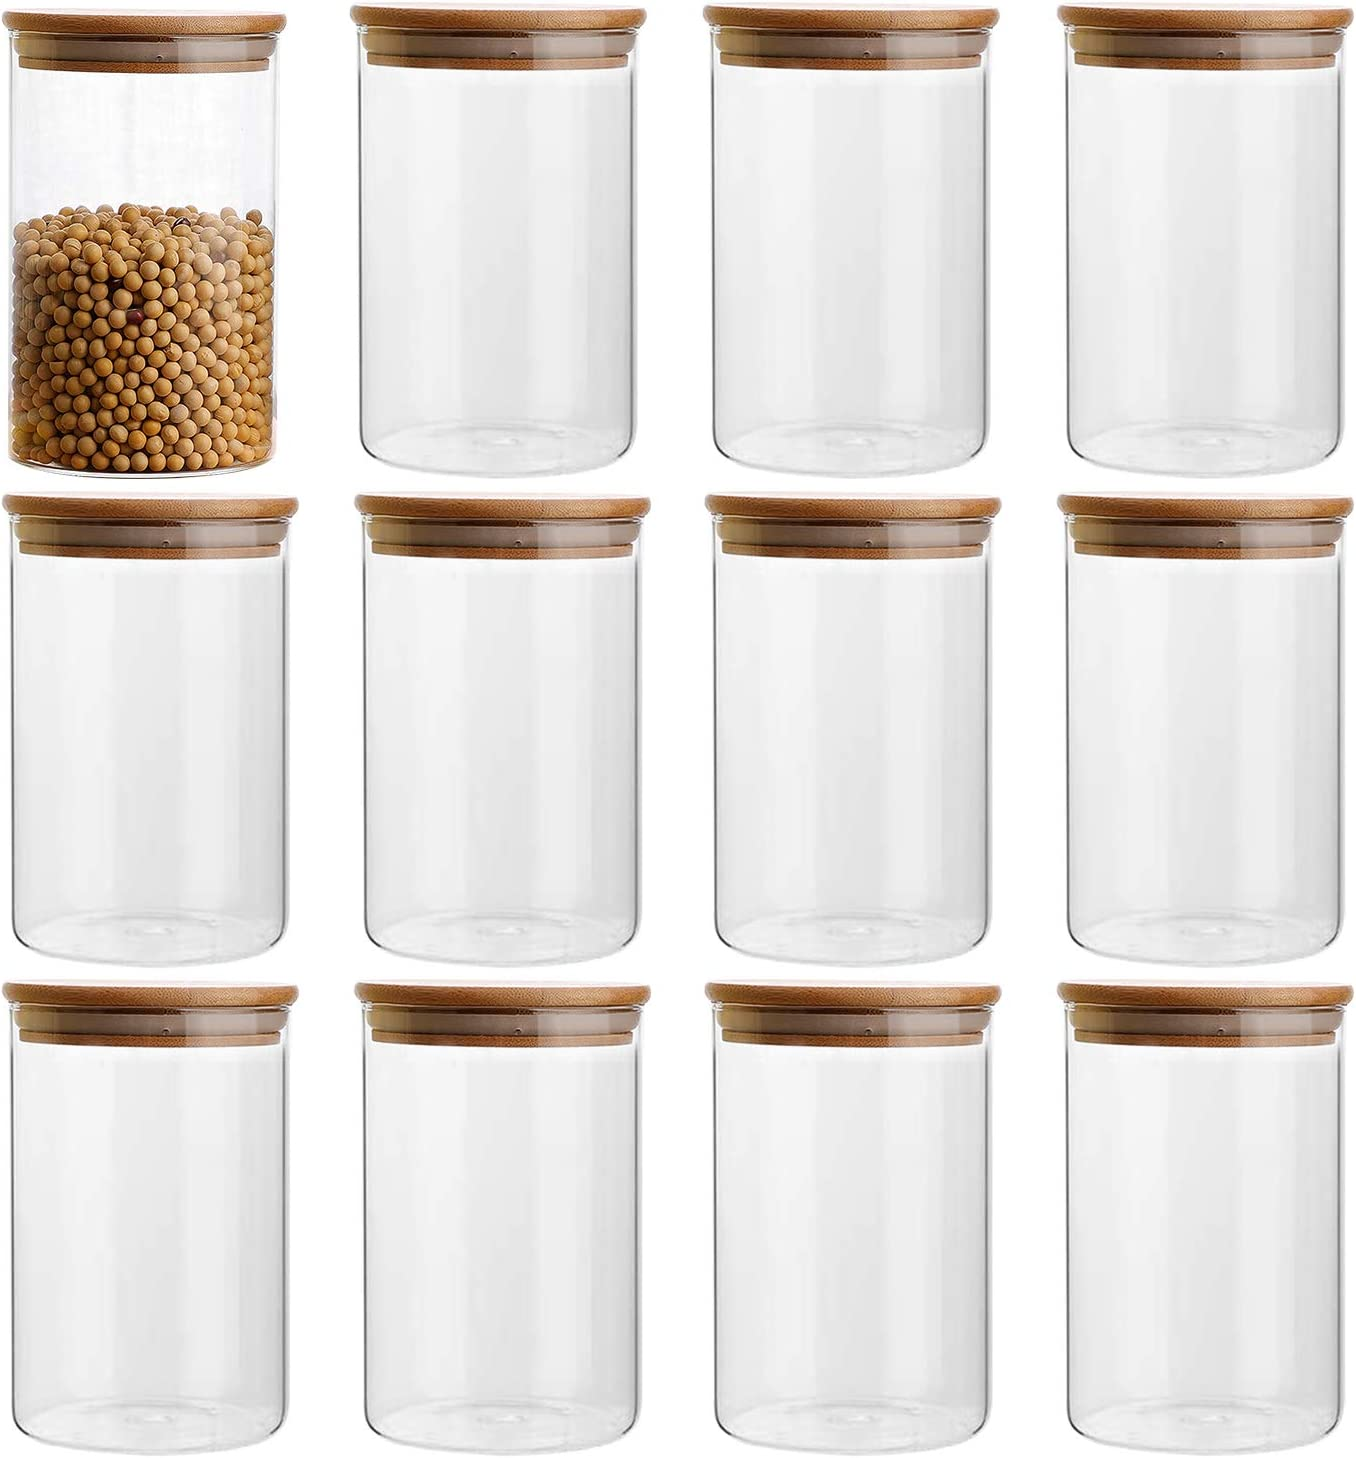 9oz/9ml Clear Glass Food Storage Containers Set Airtight Food Jars with  Bamboo Wooden Lids Kitchen Canisters For Sugar, Candy, Cookie, Rice and ...